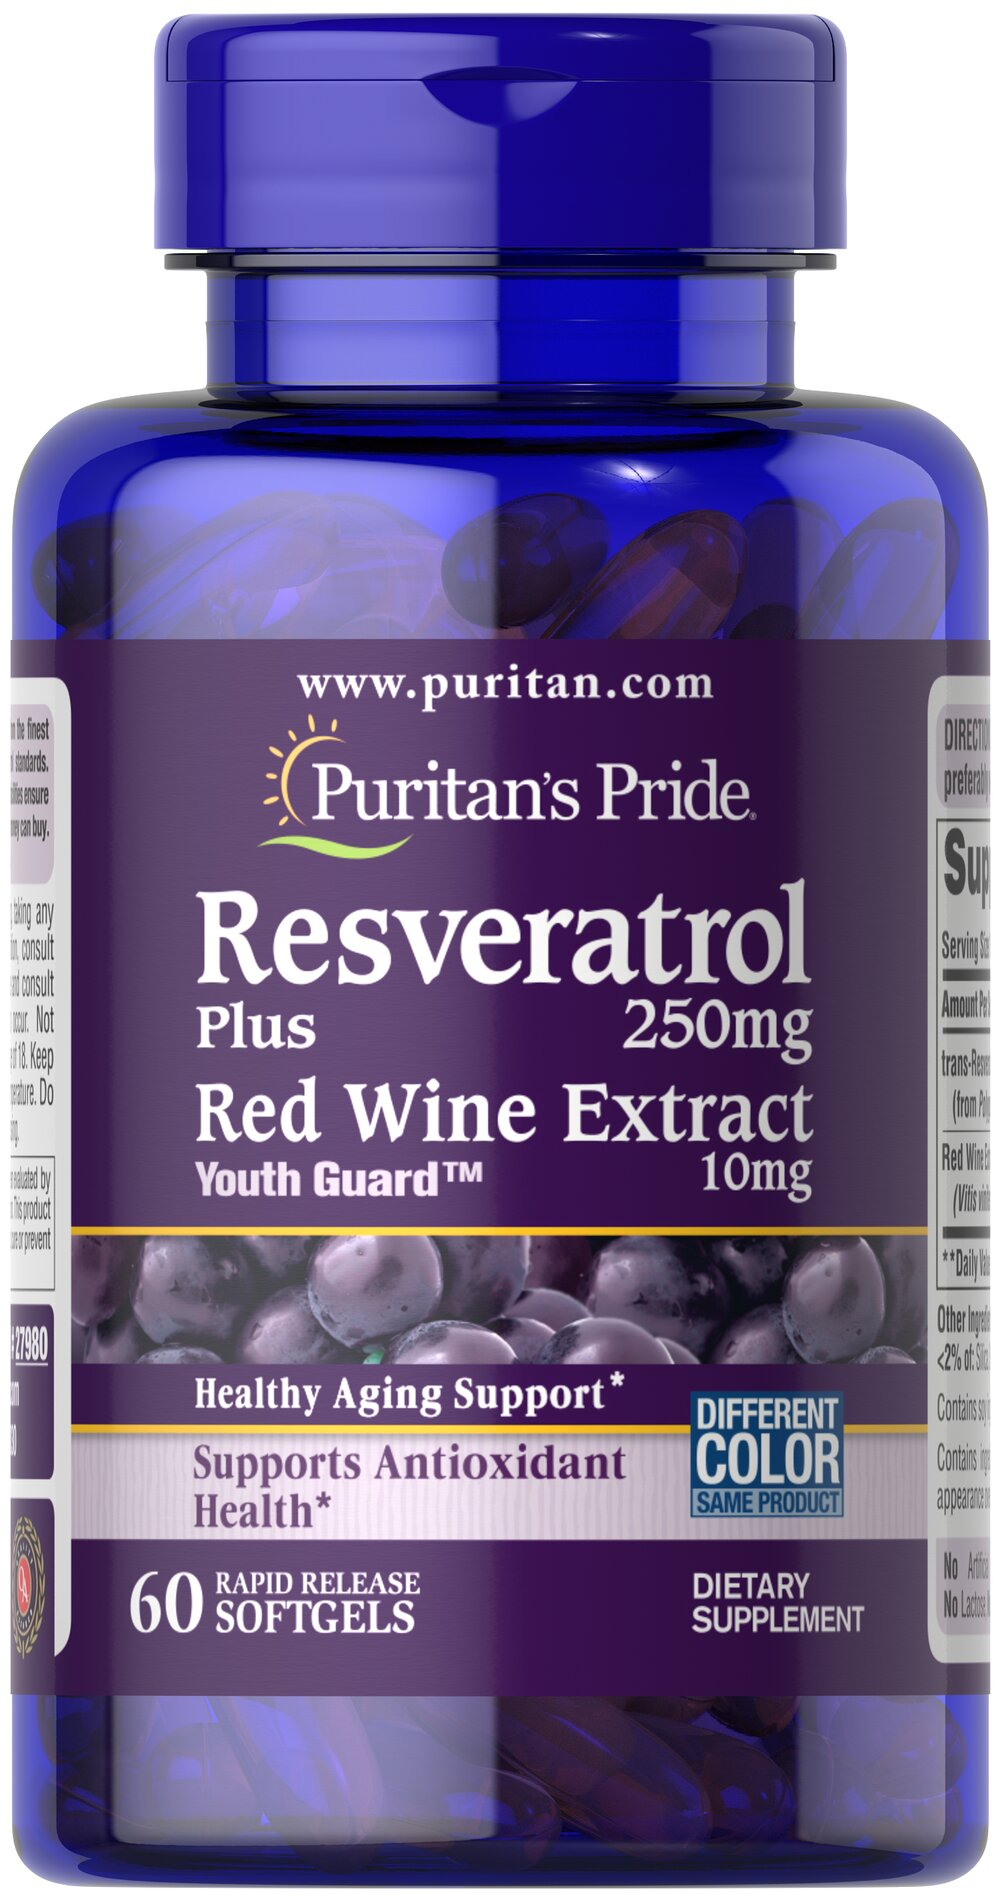 Resveratrol 250 mg <p>Resveratrol is the beneficial nutrient found in red wine</p><p>You'll get more Resveratrol in one of our capsules than you would from an entire bottle of red wine!</p><p>Maximum strength capsules are formulated for rapid  release into your system</p><p>Provides powerful antioxidant support**</p><p>Helps fight against cell-damaging free radicals**</p> 60 Softgels 250 mg $44.99